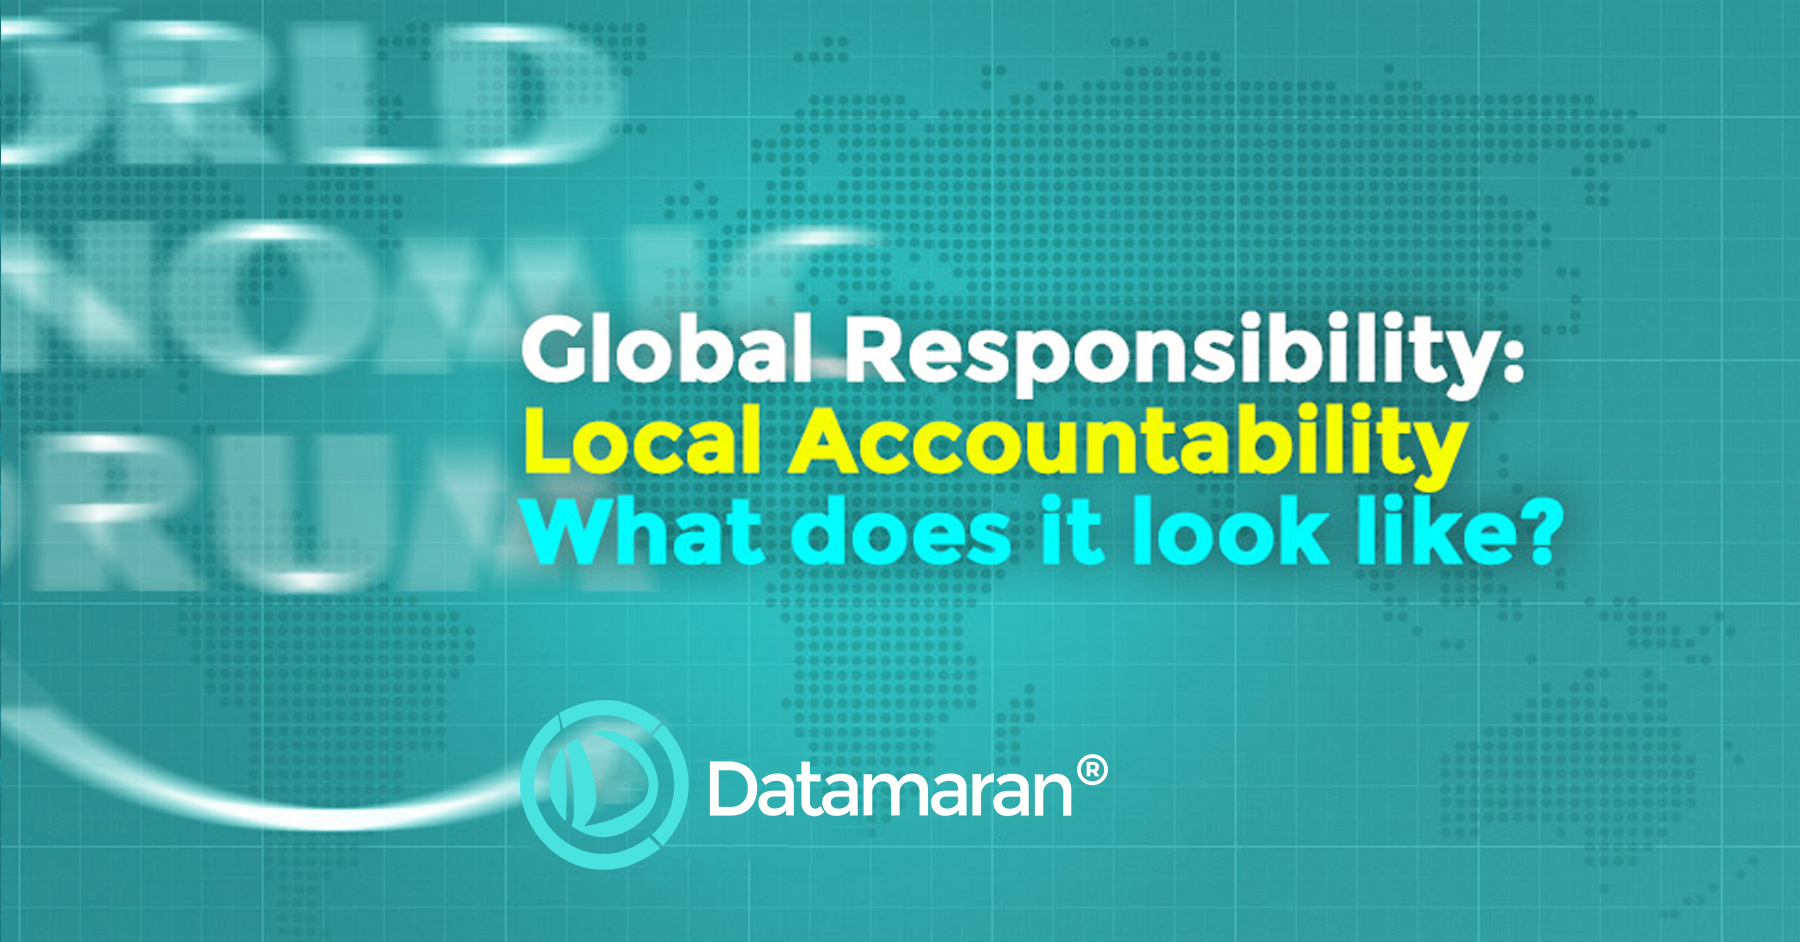 Global Responsibility: Local Accountability. What Does It Look LIke?